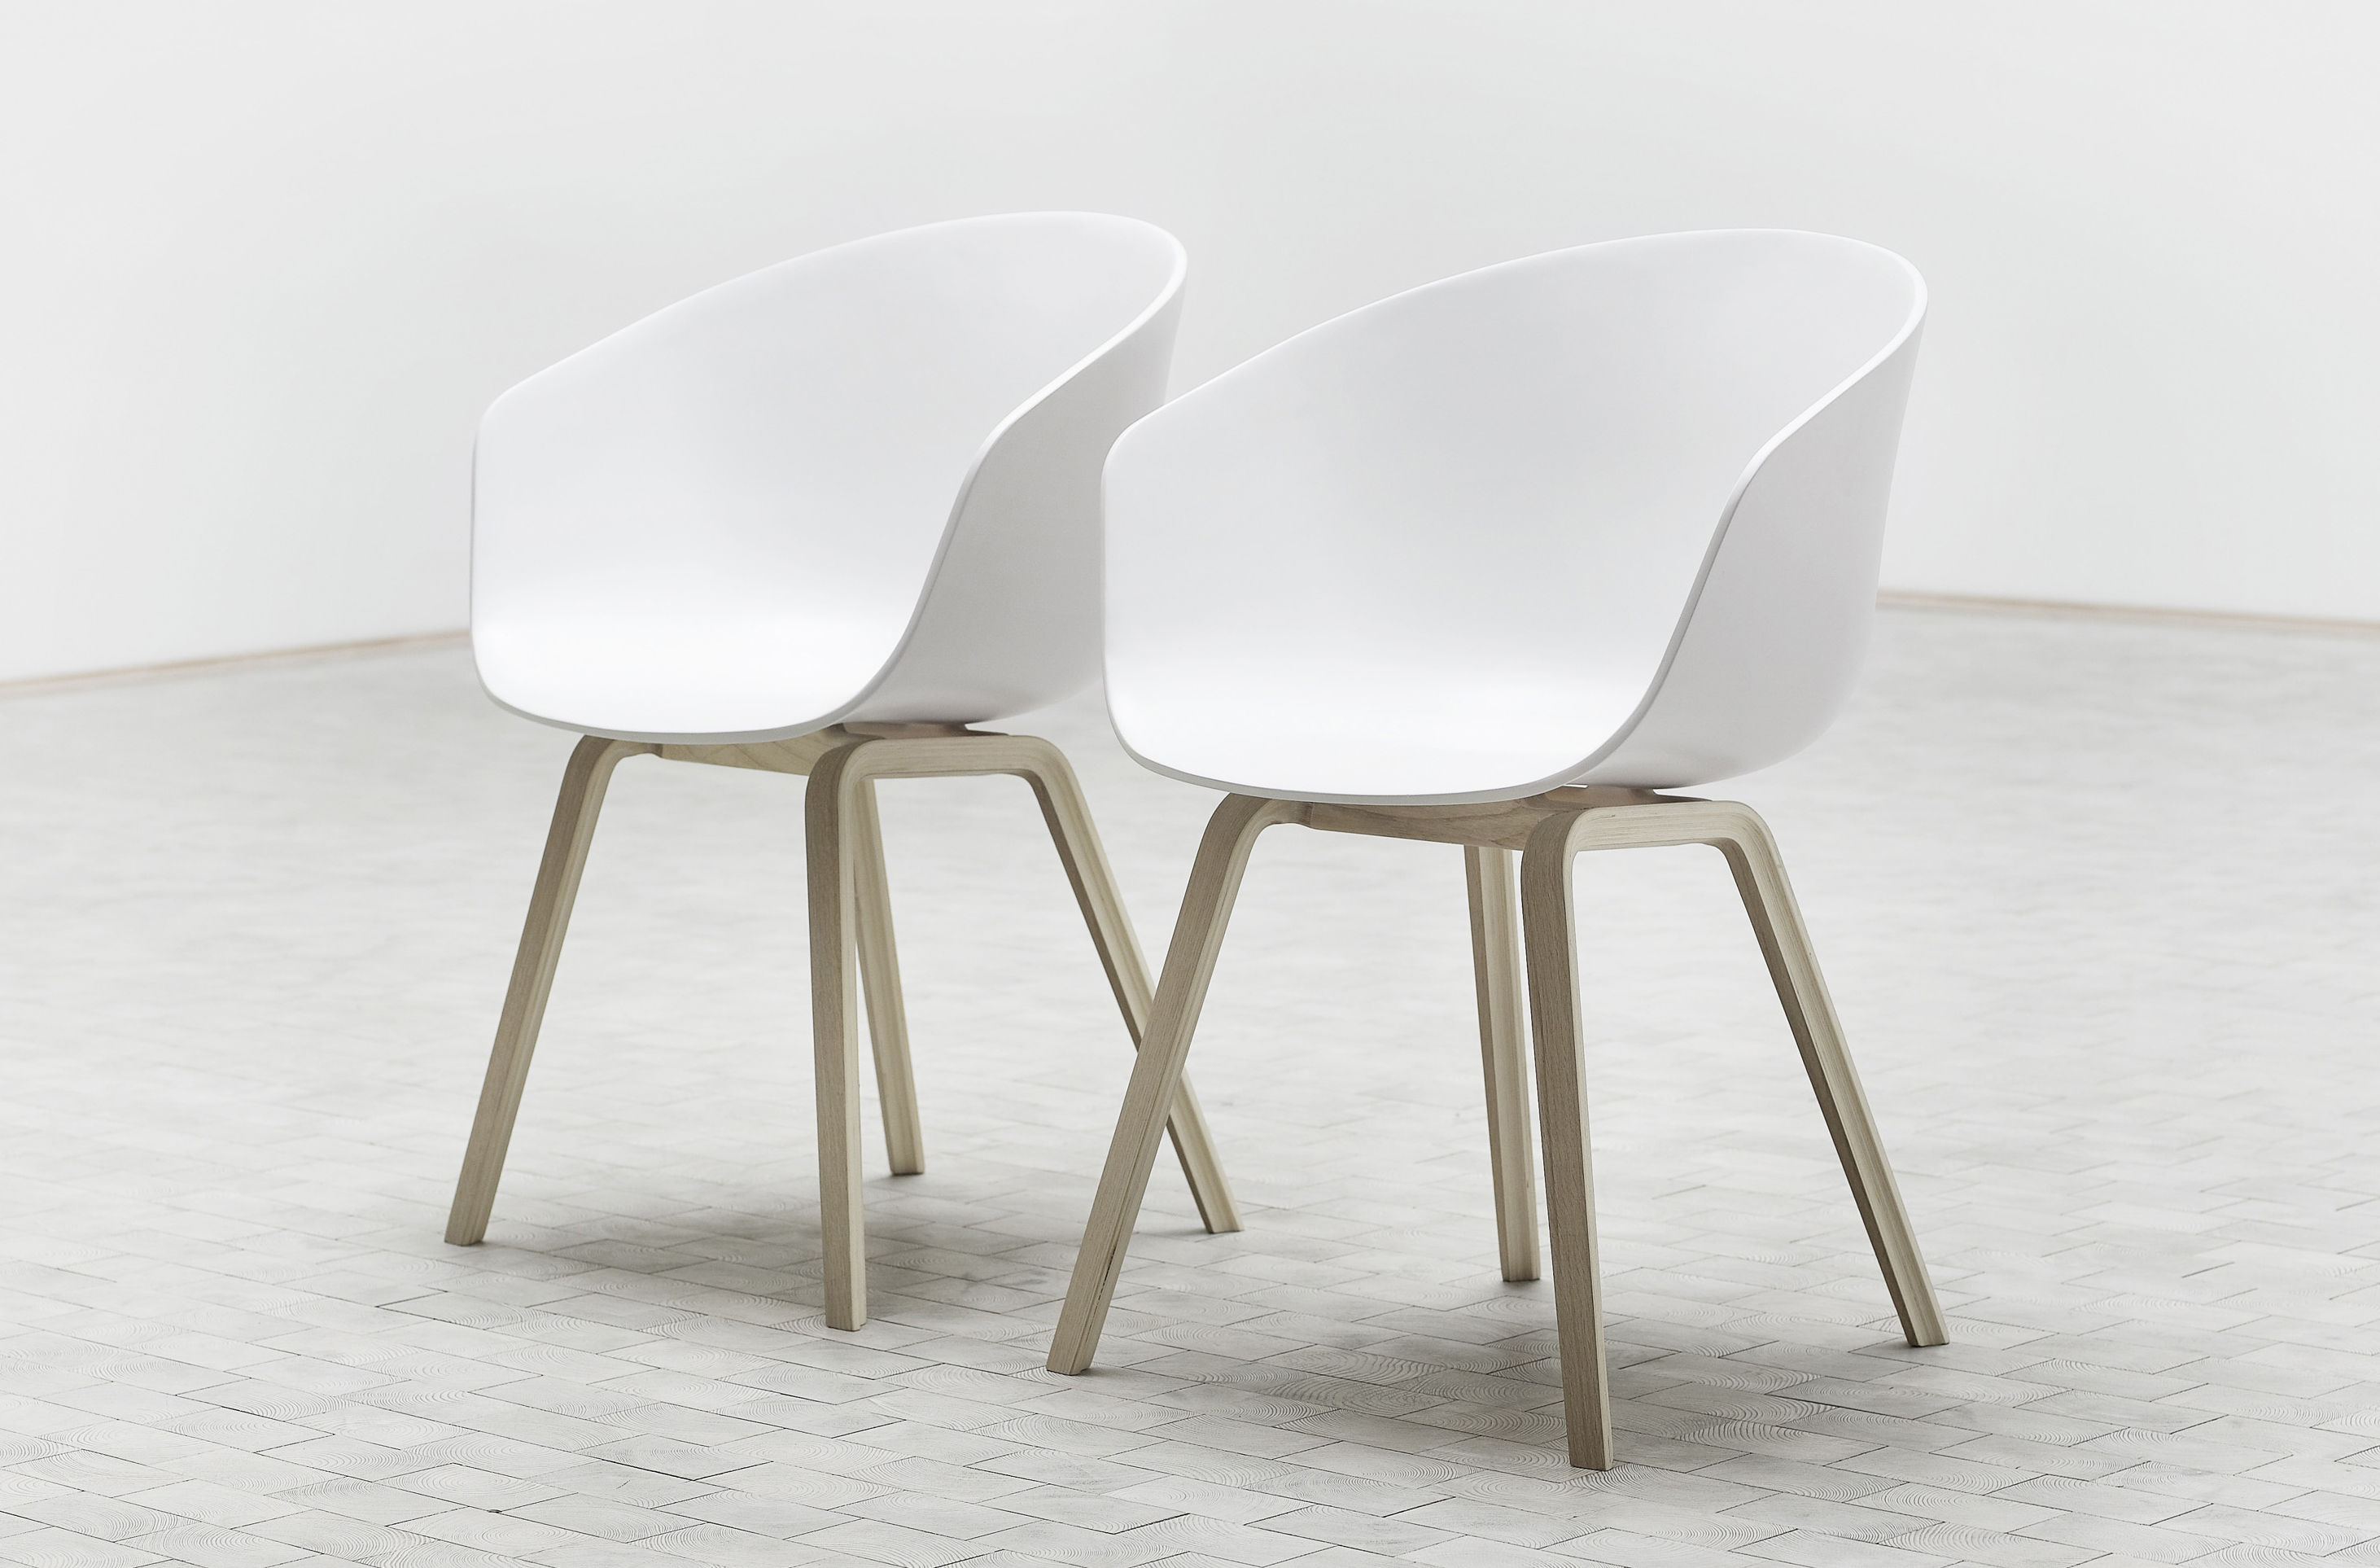 plastic feet for chair legs dining chairs argos about a aac22 armchair shell and wood